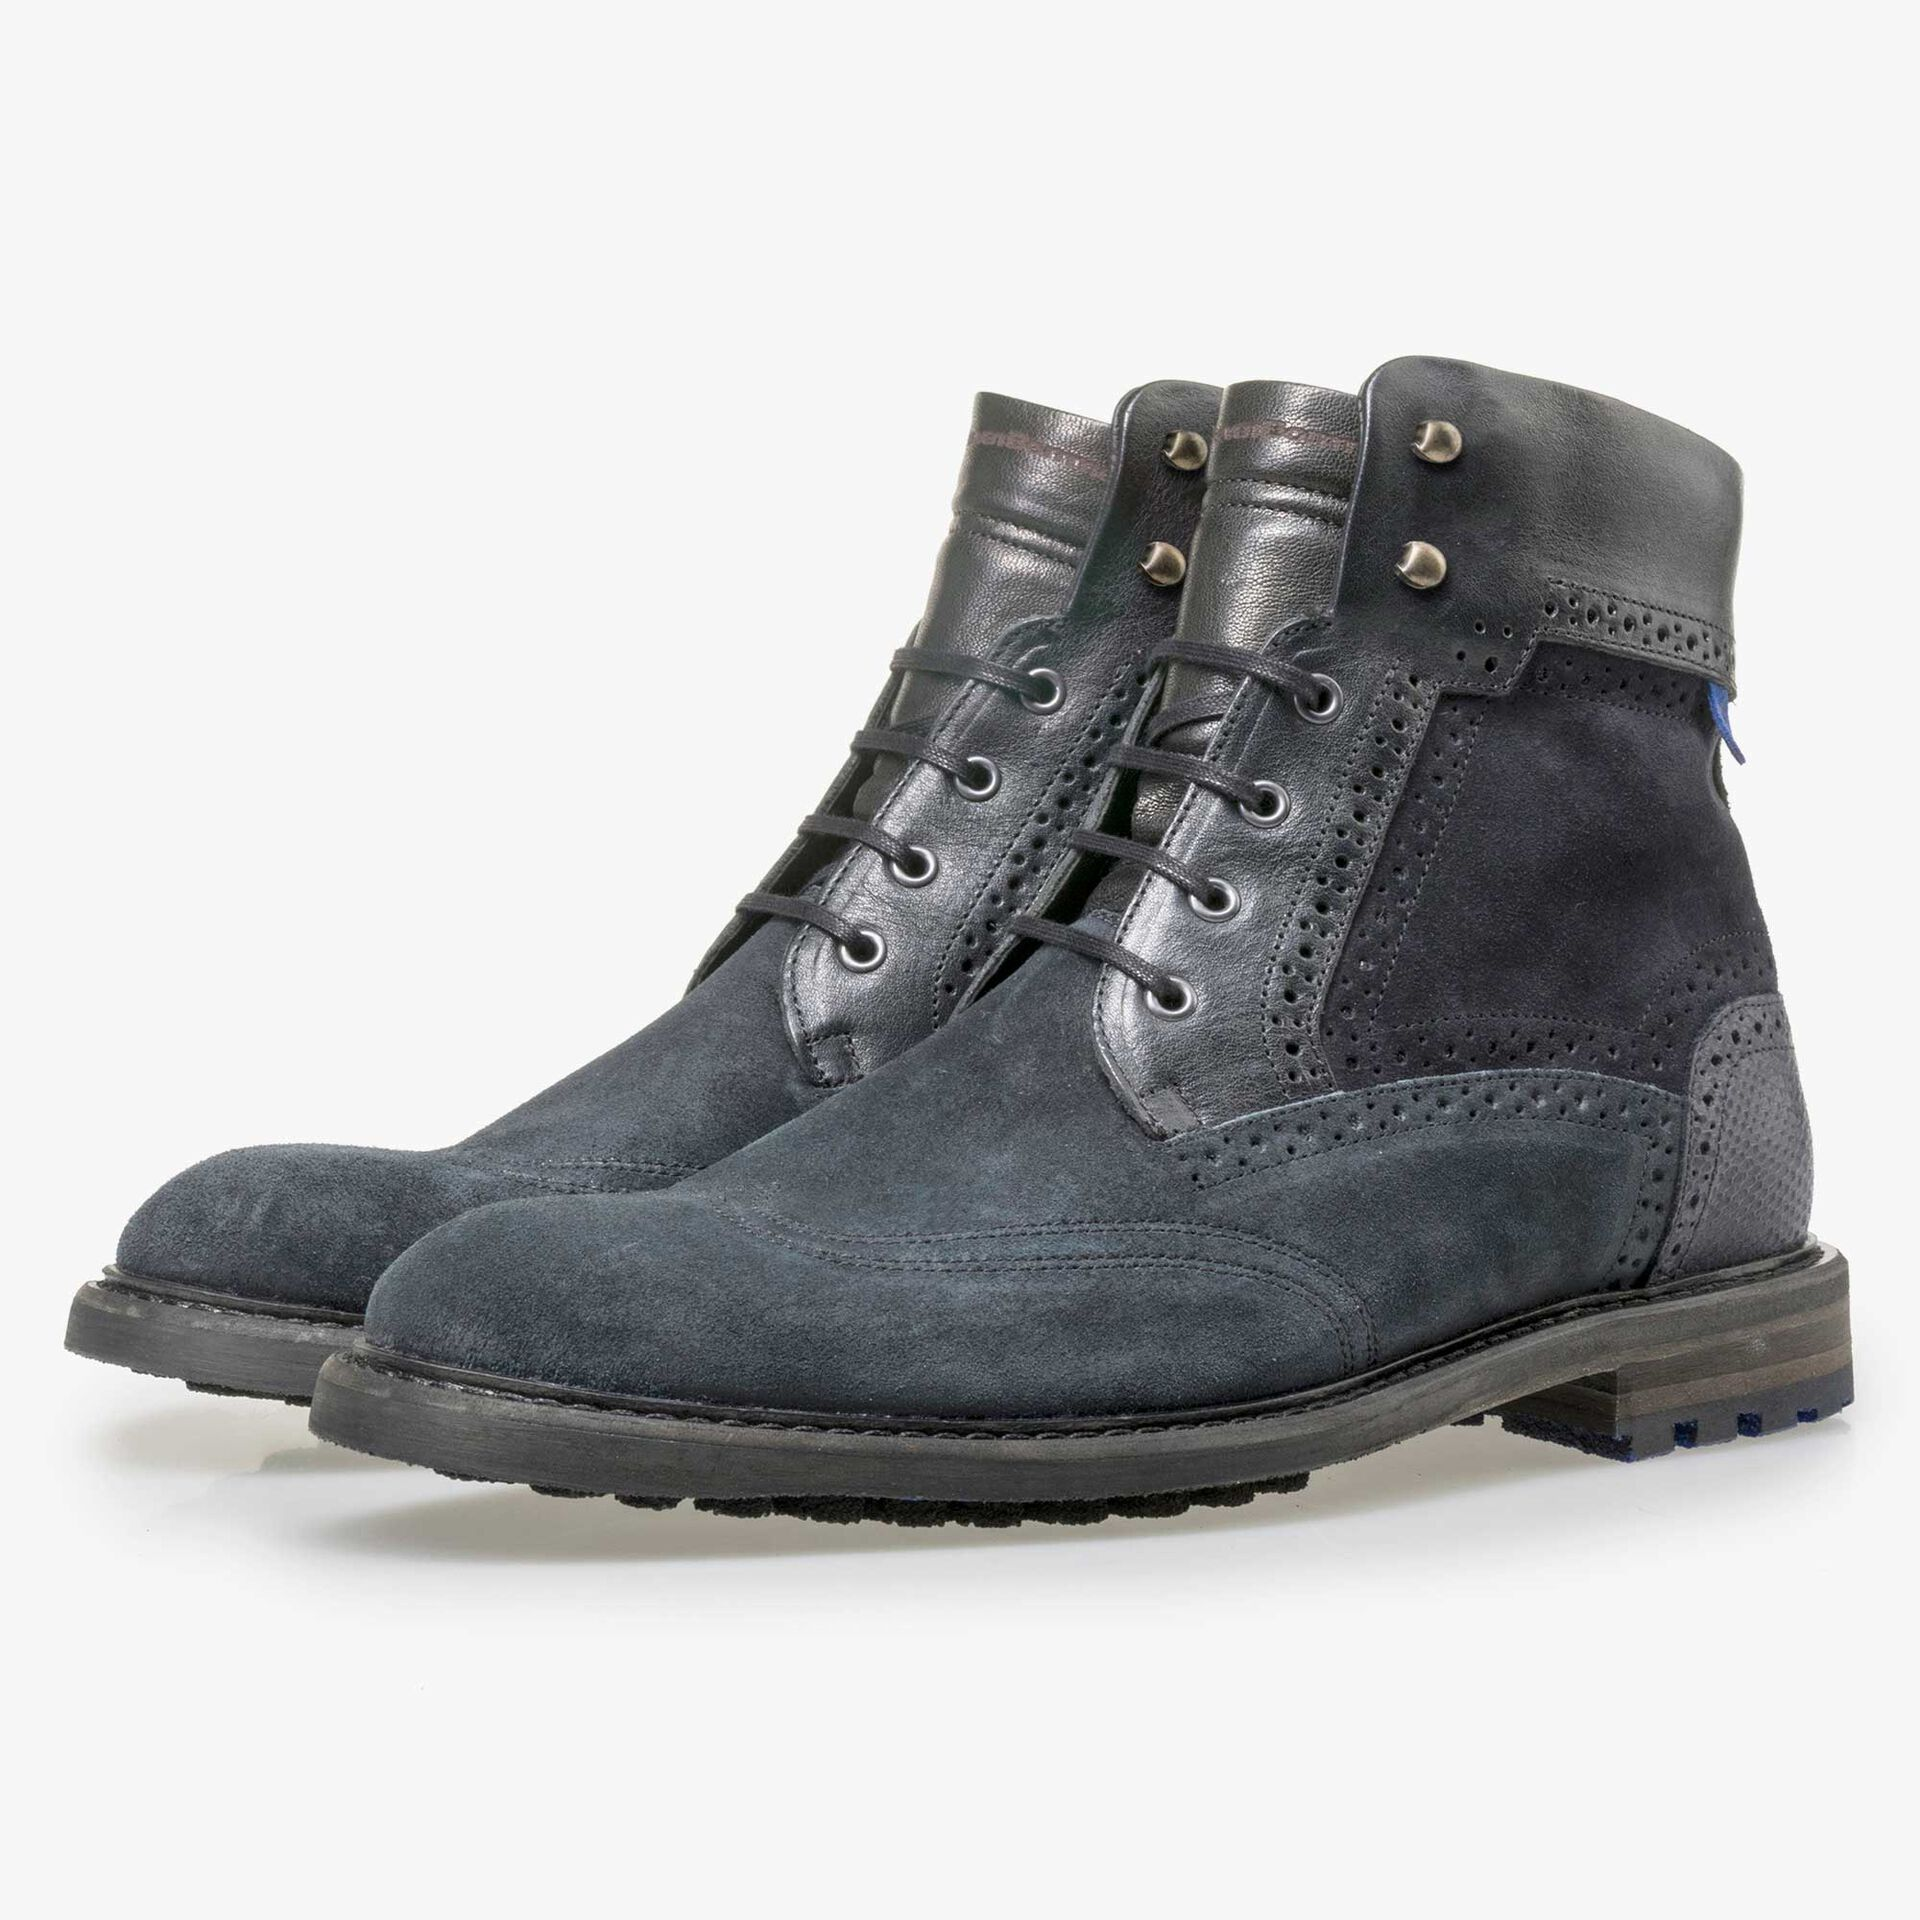 Floris van Bommel dark blue high suede leather lace boot